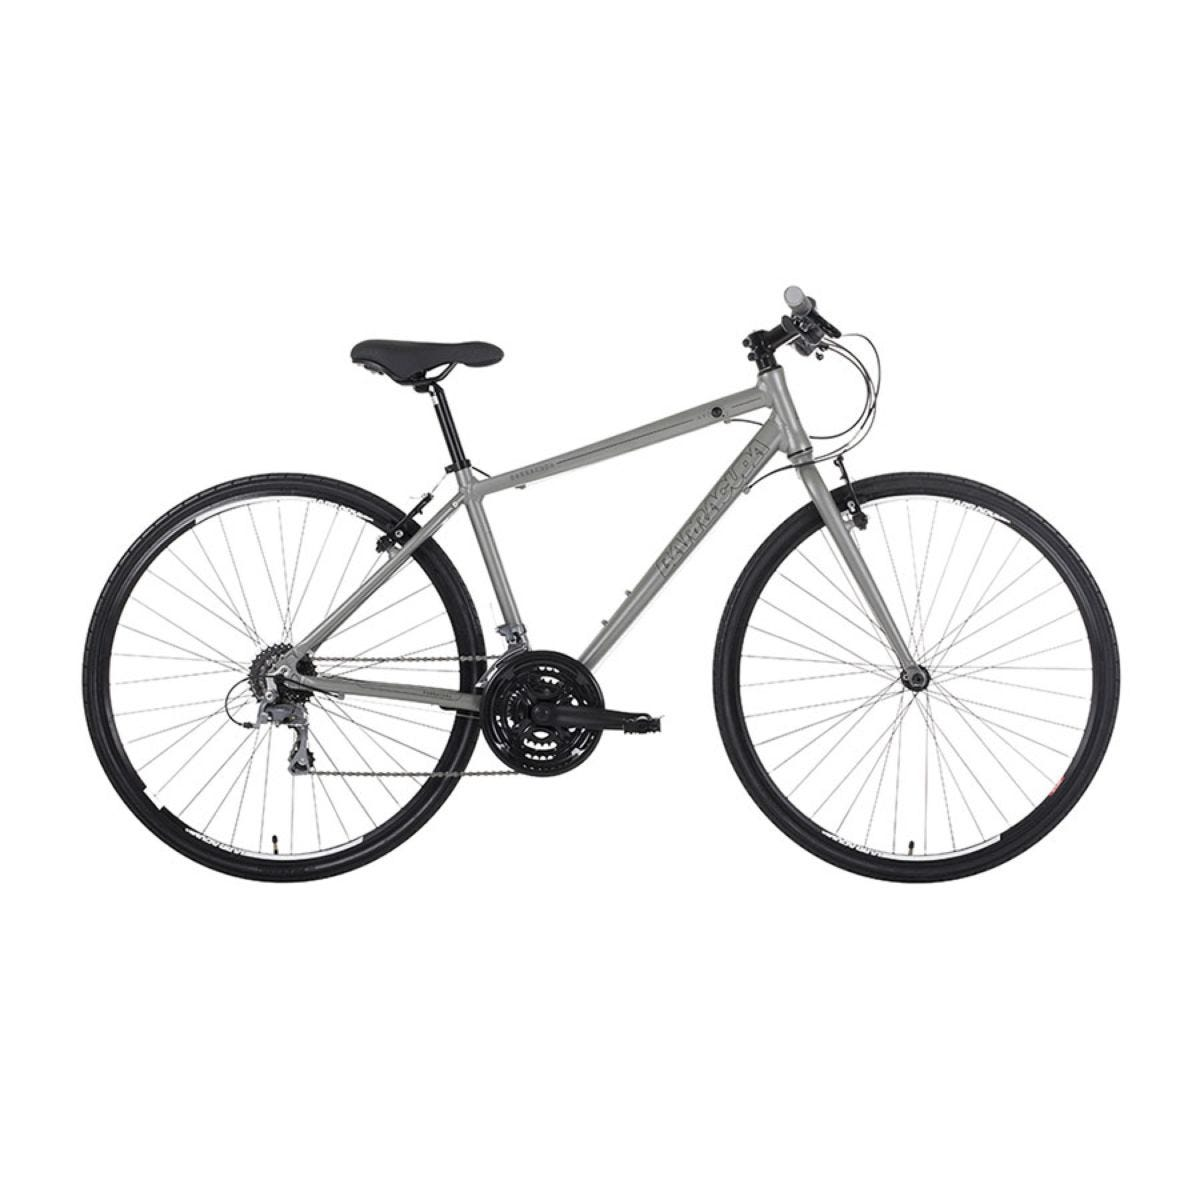 Barracuda Men's Hydra 2 Sports Hybrid Bike 700c Wheels